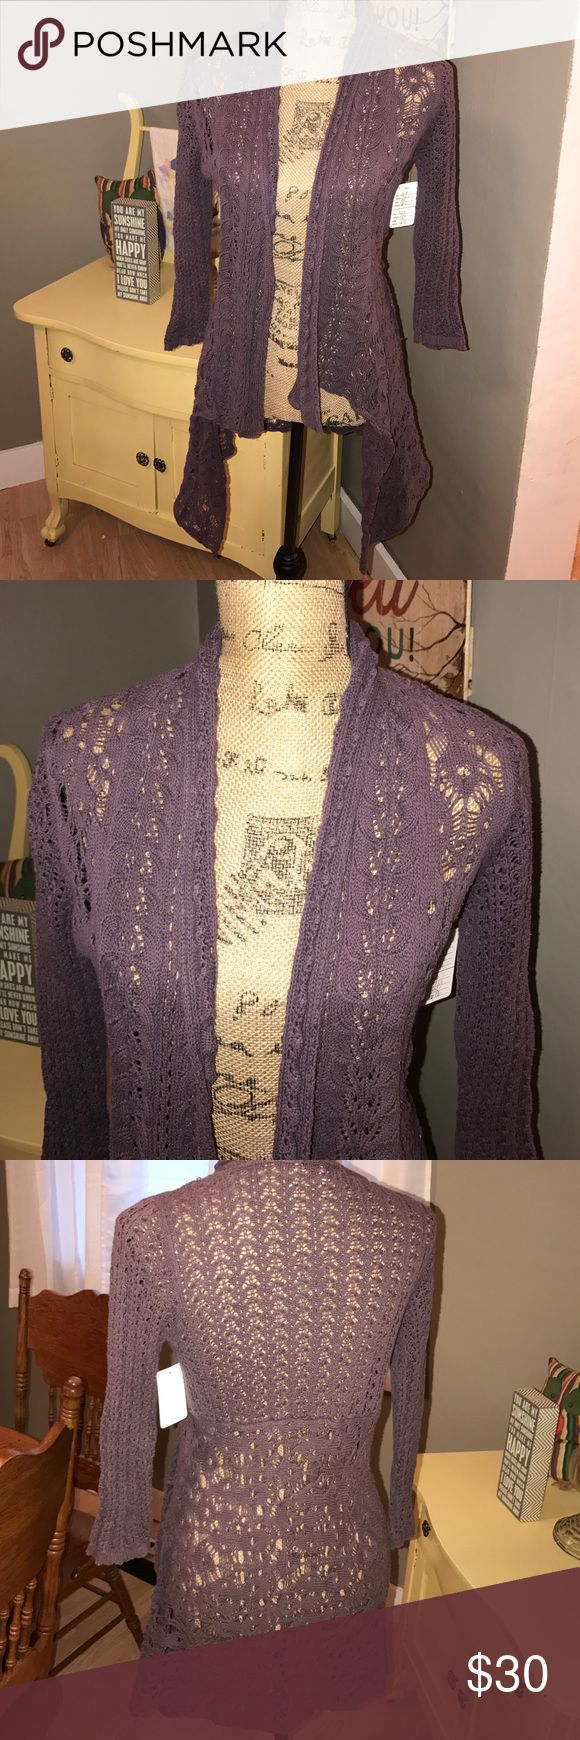 Stunning Cardigan sweater from Cabi Love this!! Dusky purple sz small crocheted type open Cardigan from Cabi in small. Shows no sign of heavy wear. Shark bite type bottom. High quality piece. I have lots more in my closet so ✔️them out to save 💰on bundles. I 💕reasonable offers. CAbi Sweaters Cardigans